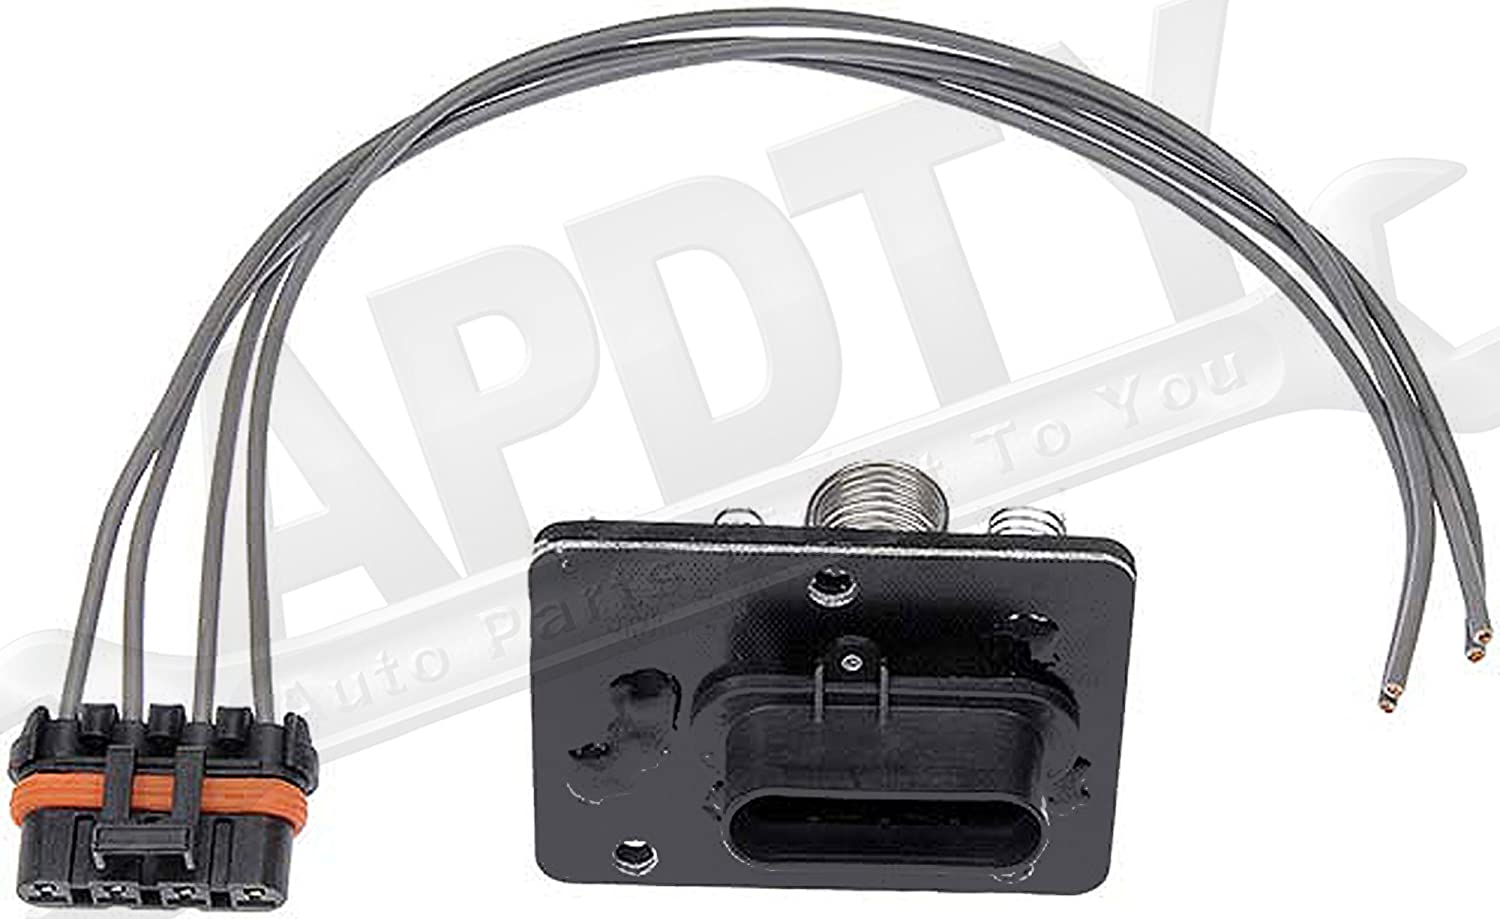 Apdty 084514 Blower Motor Resistor Kit W Wiring Harness Wire Amp Cable Technician Pigtail Fits 1994 2004 Chevrolet S10 Pickup 1995 2005 Chevy Blazer Gmc Sonoma